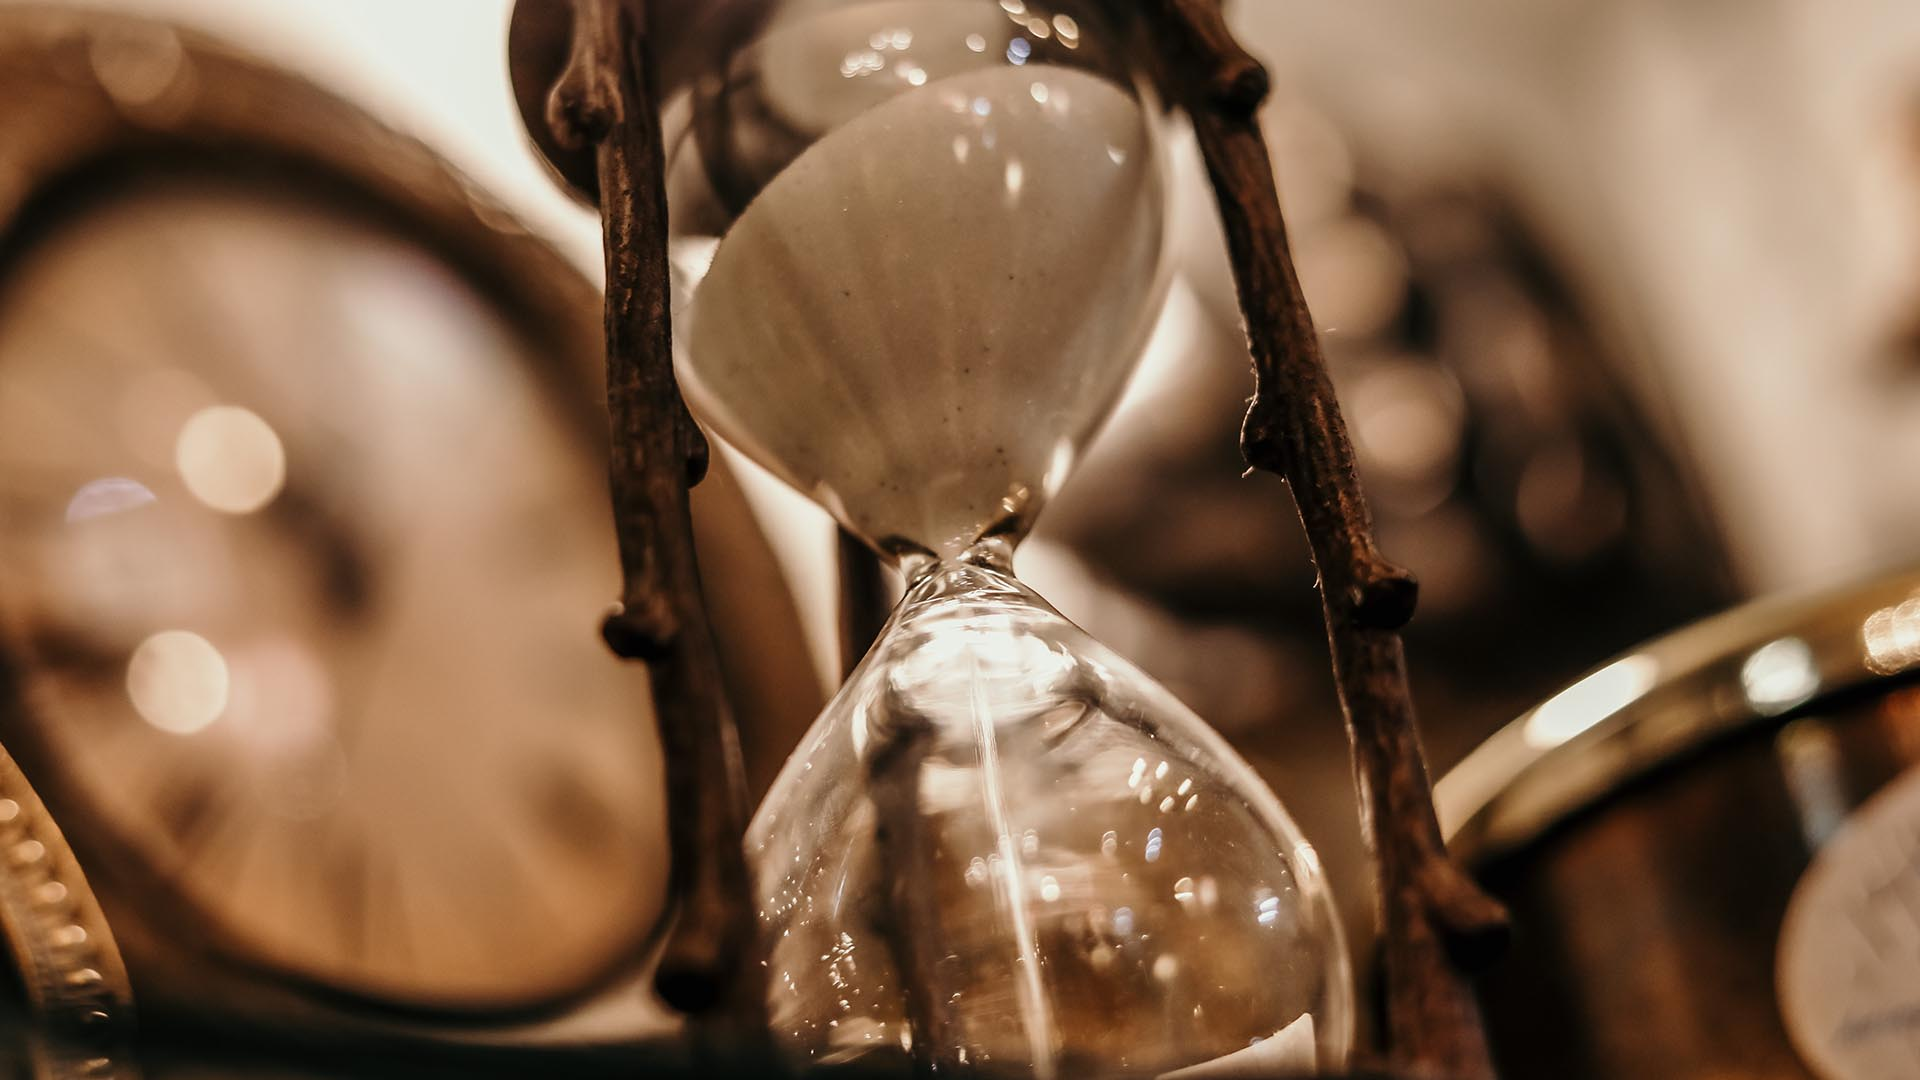 close up of an hourglass with sand falling